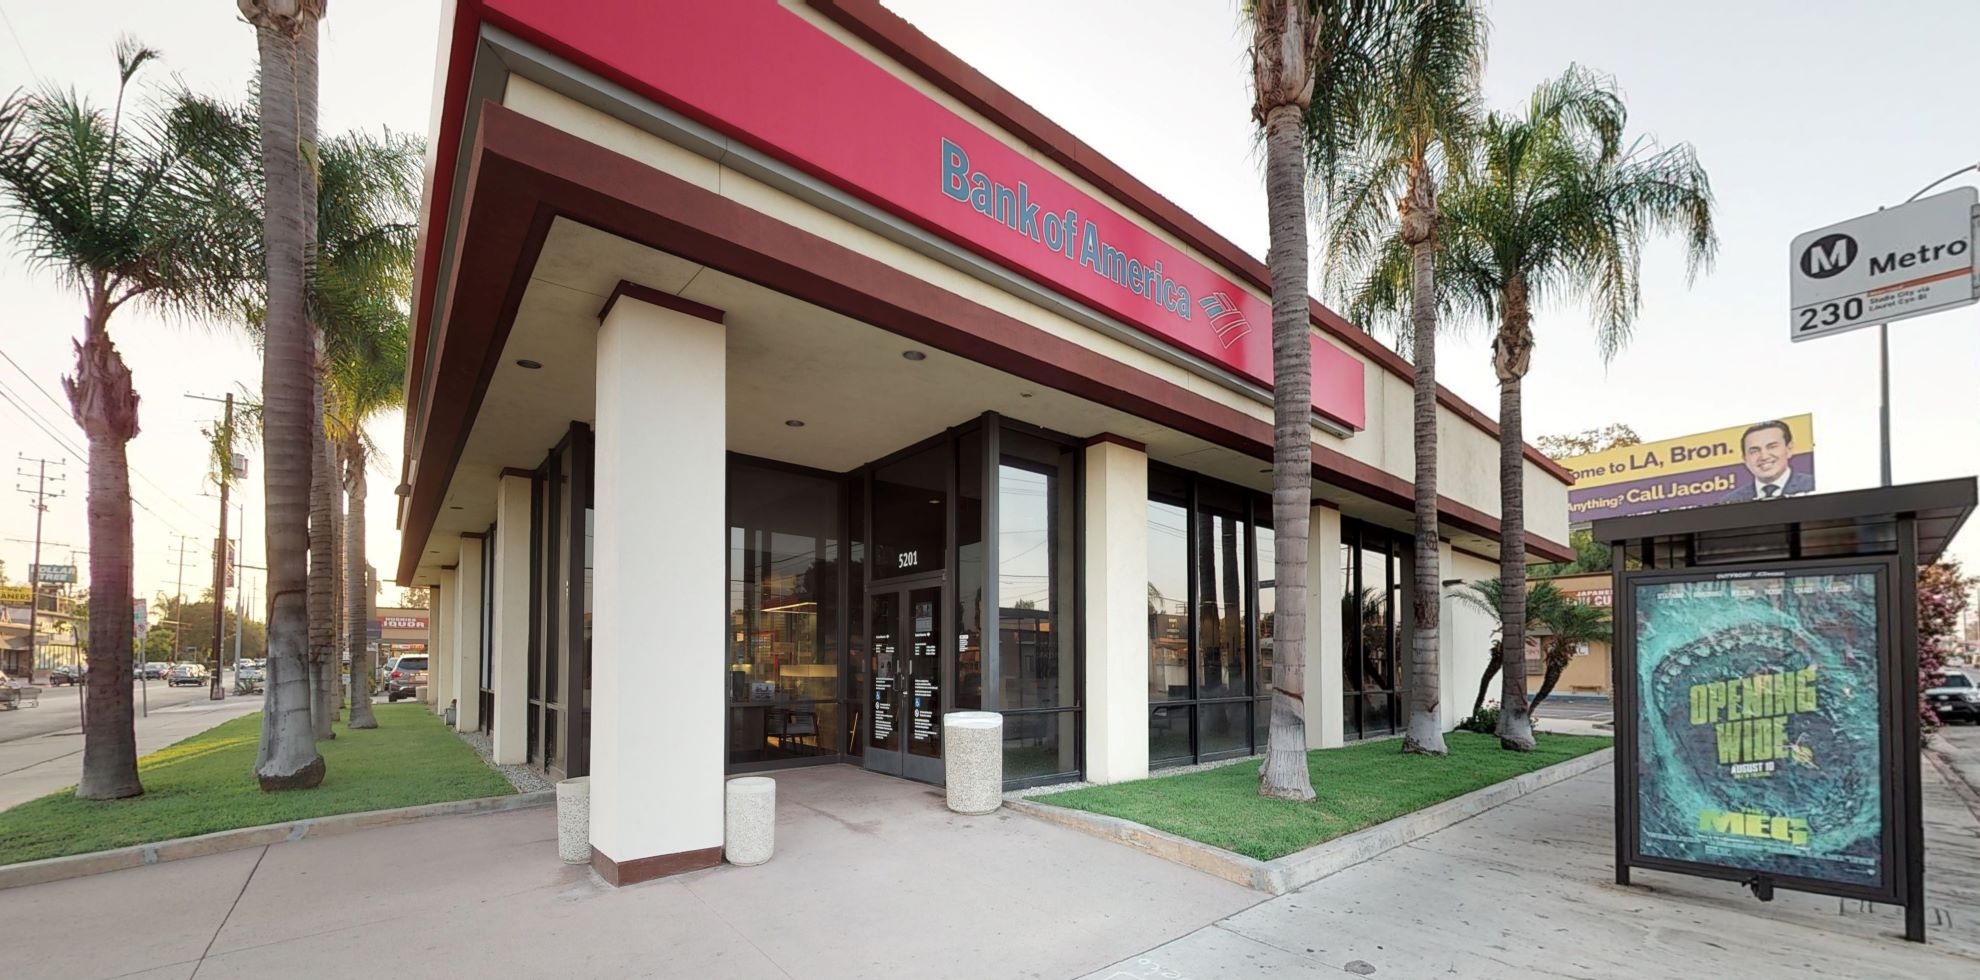 Bank of America financial center with walk-up ATM | 5201 Laurel Canyon Blvd, North Hollywood, CA 91607